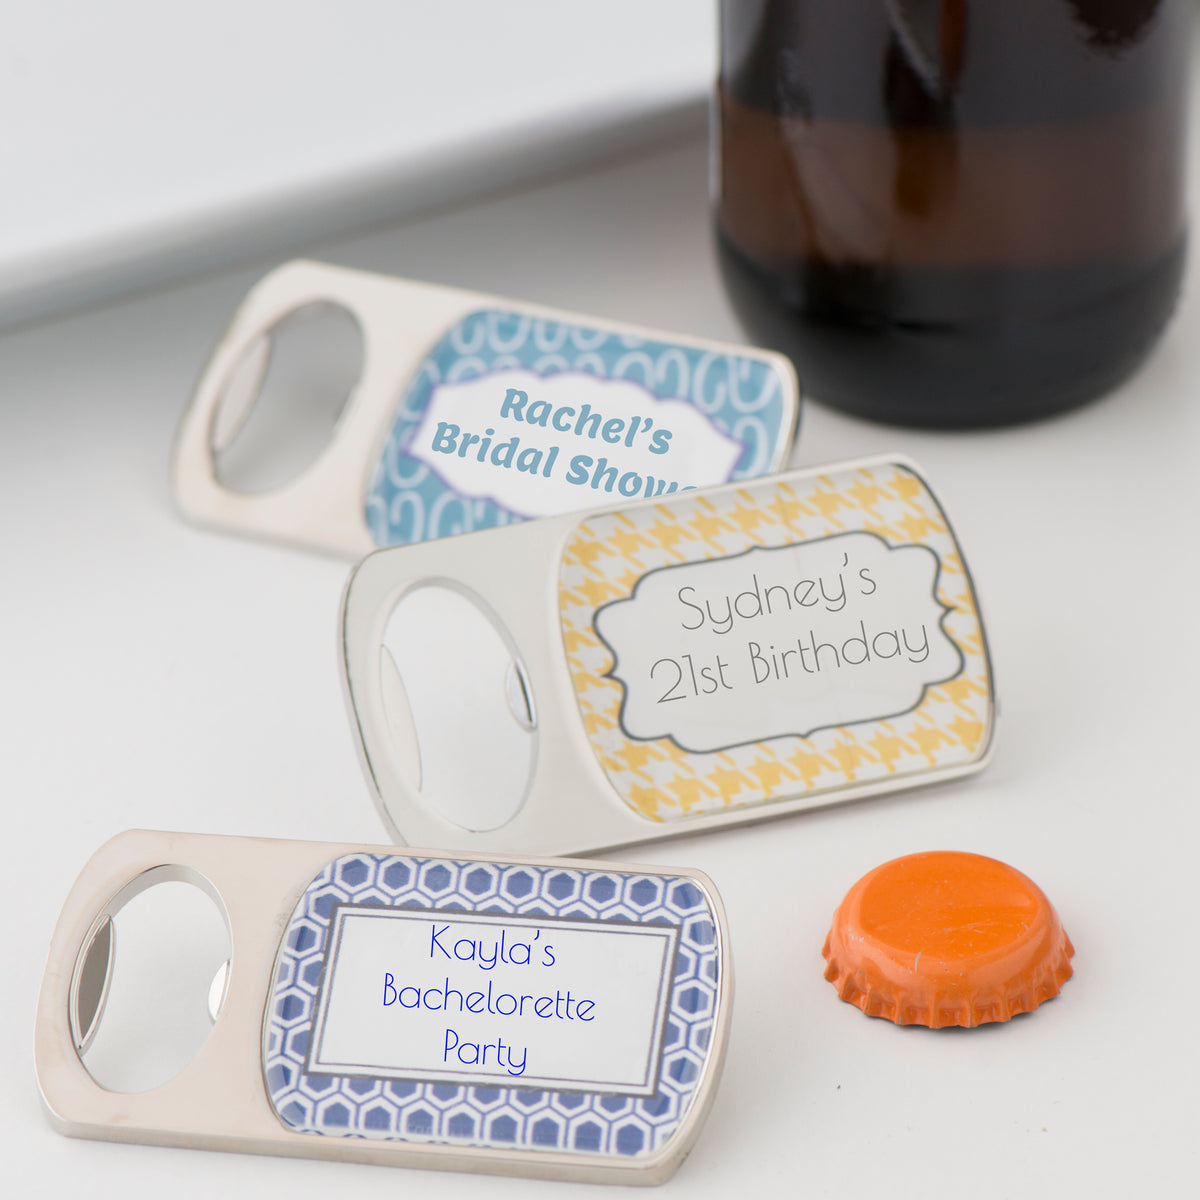 Bottoms Up Personalized Bottle Opener